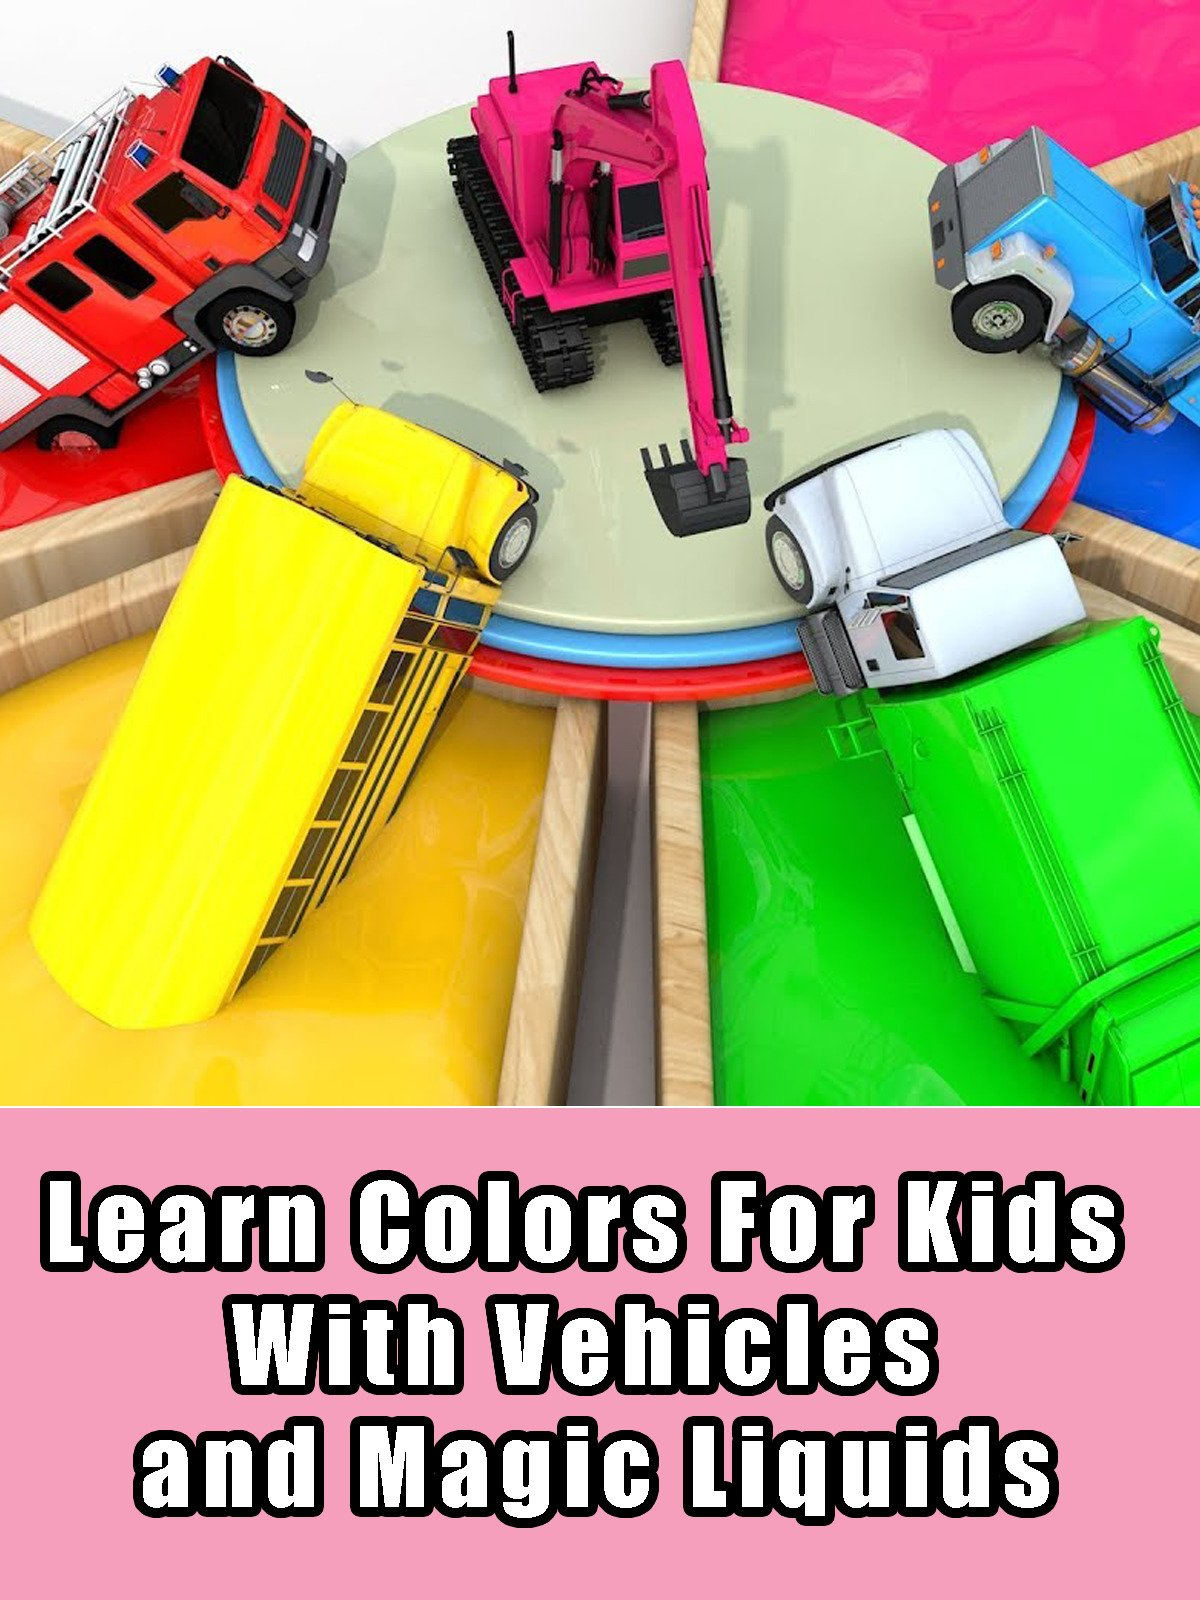 Learn Colors For Kids With Vehicles and Magic Liquids